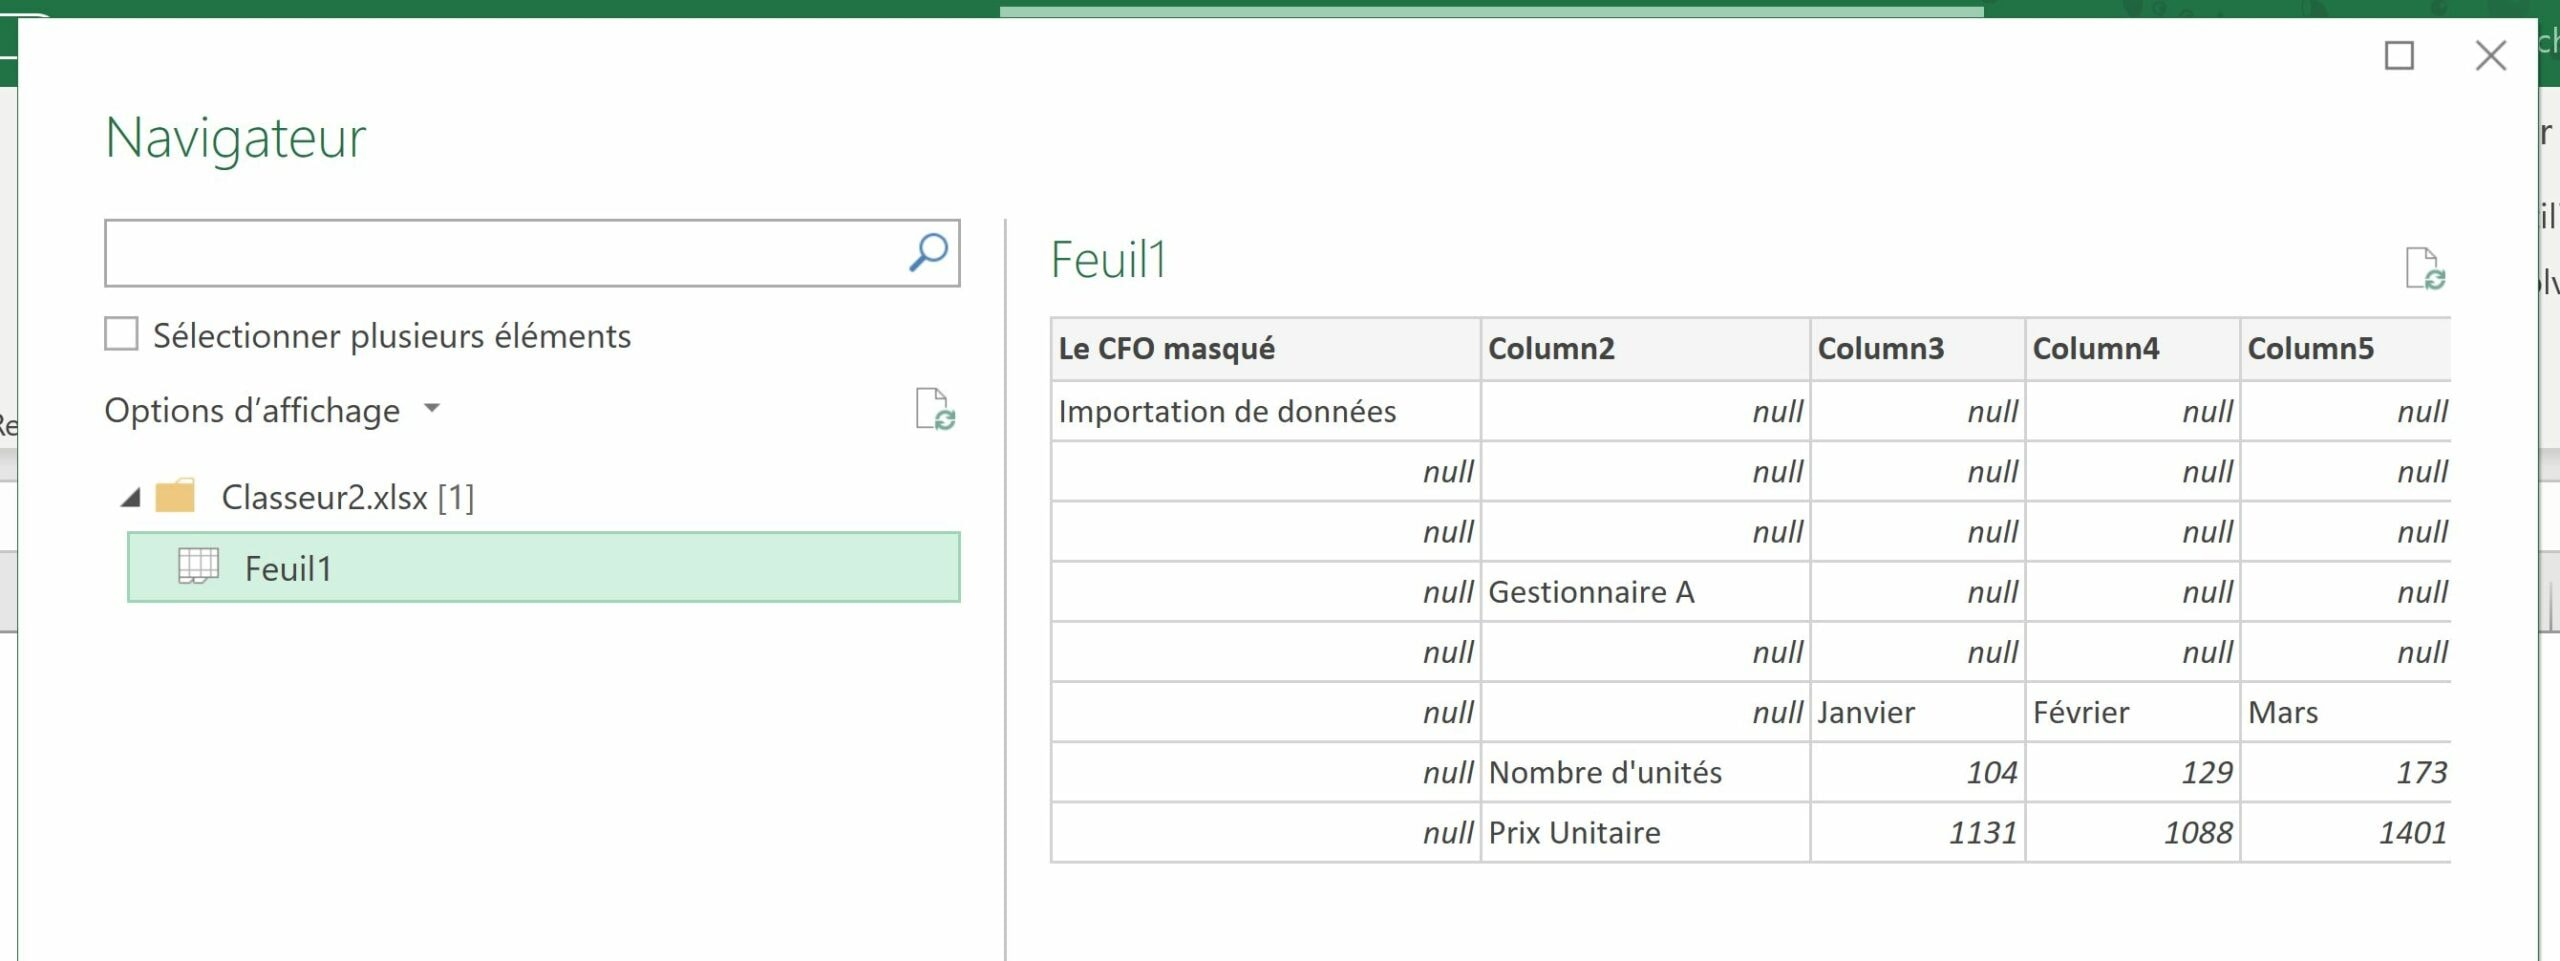 Fichier Excel importé via Power Query